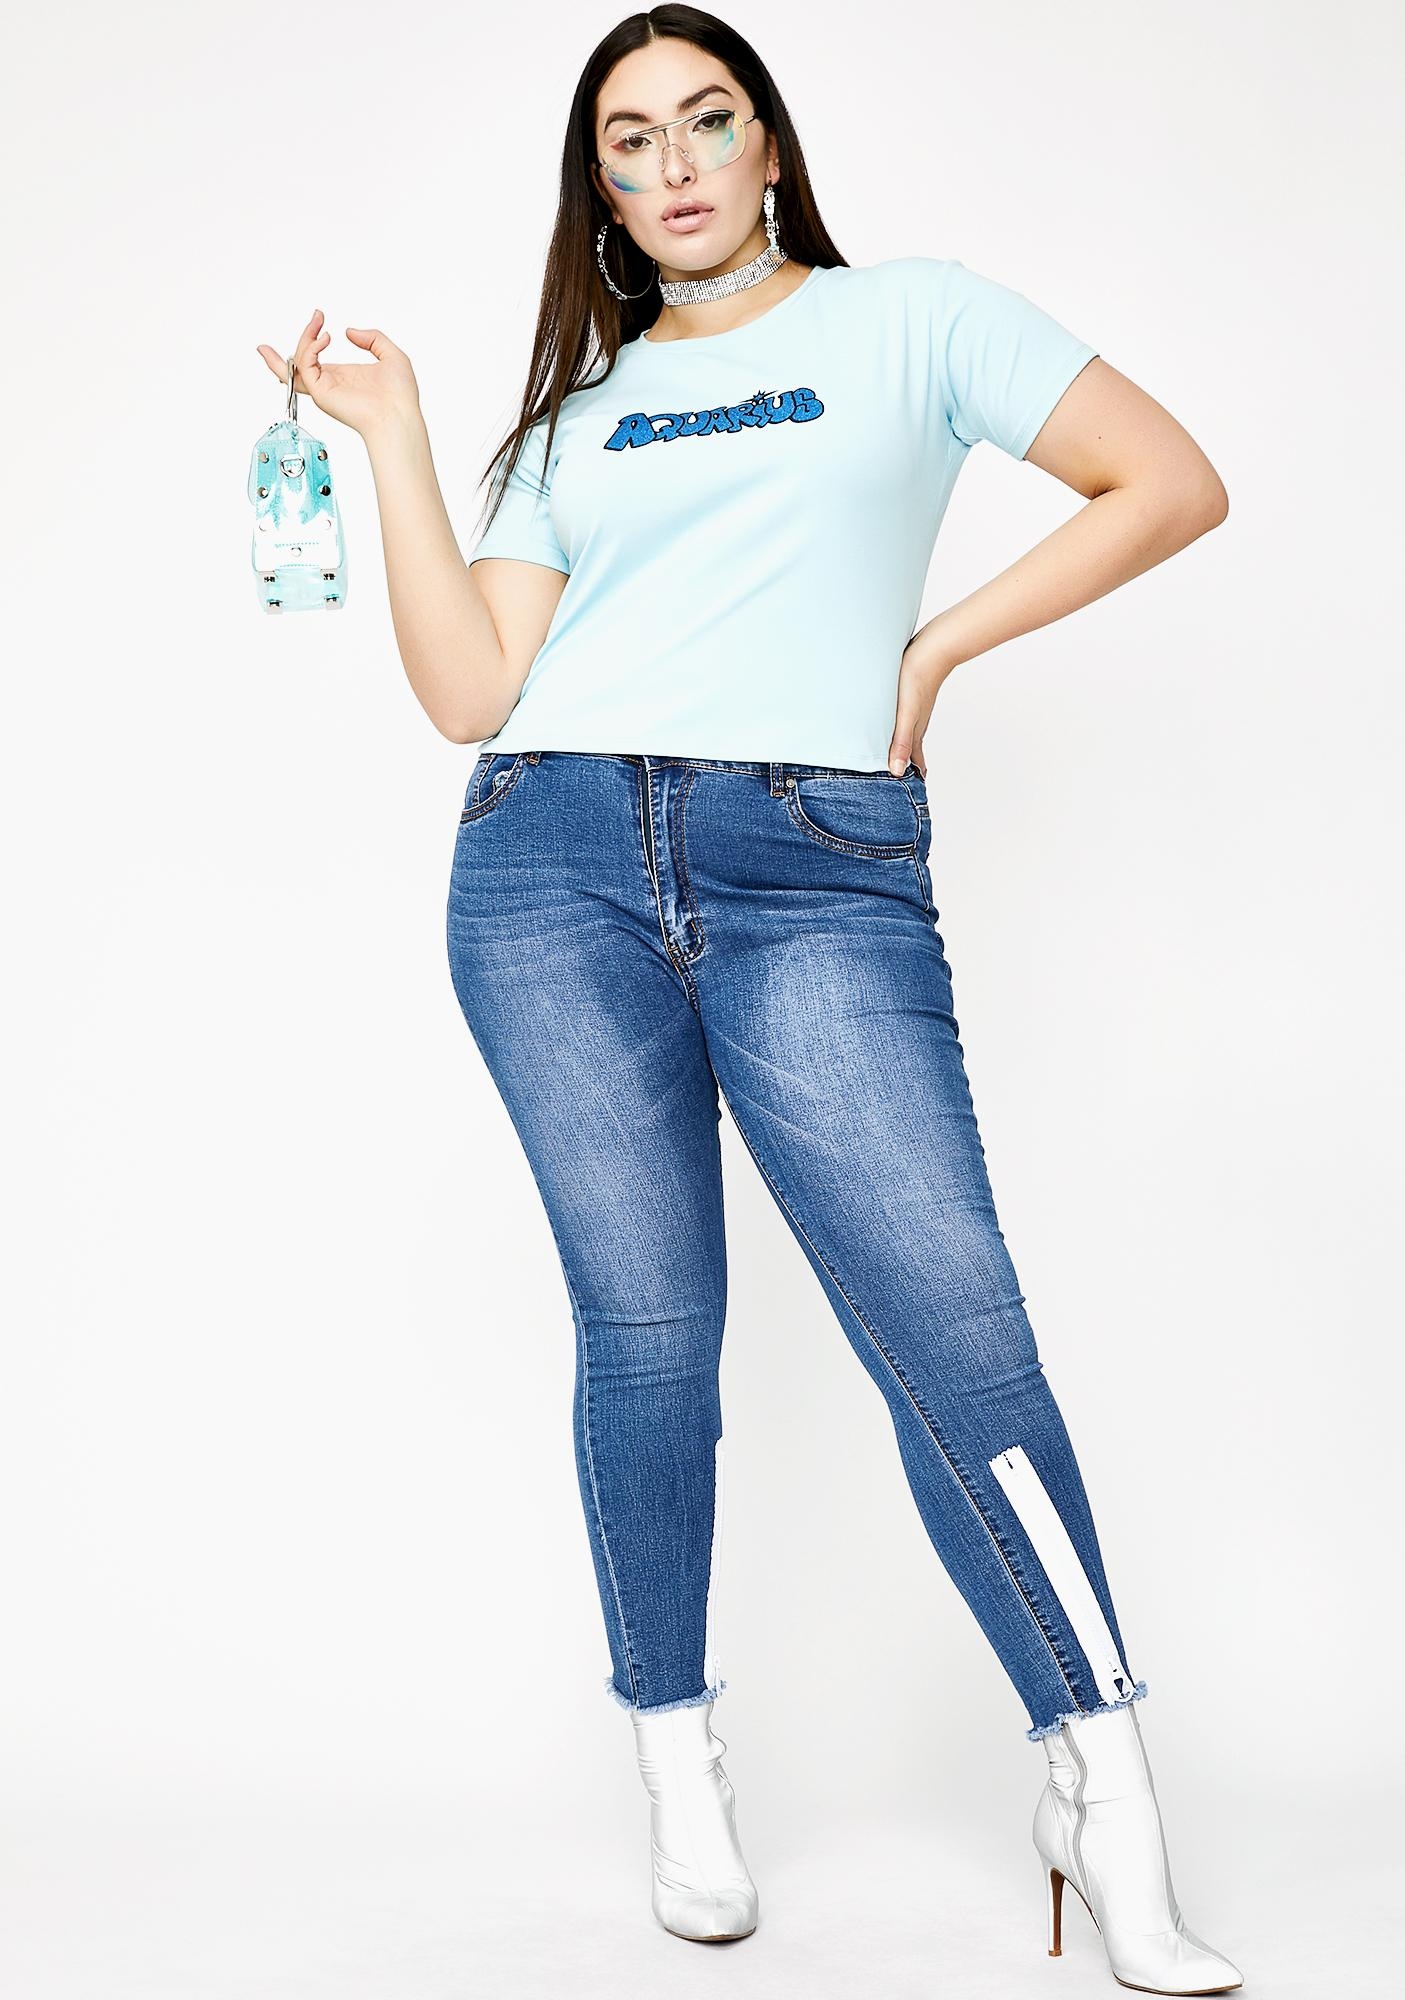 HOROSCOPEZ True Airy Aquarius Tee